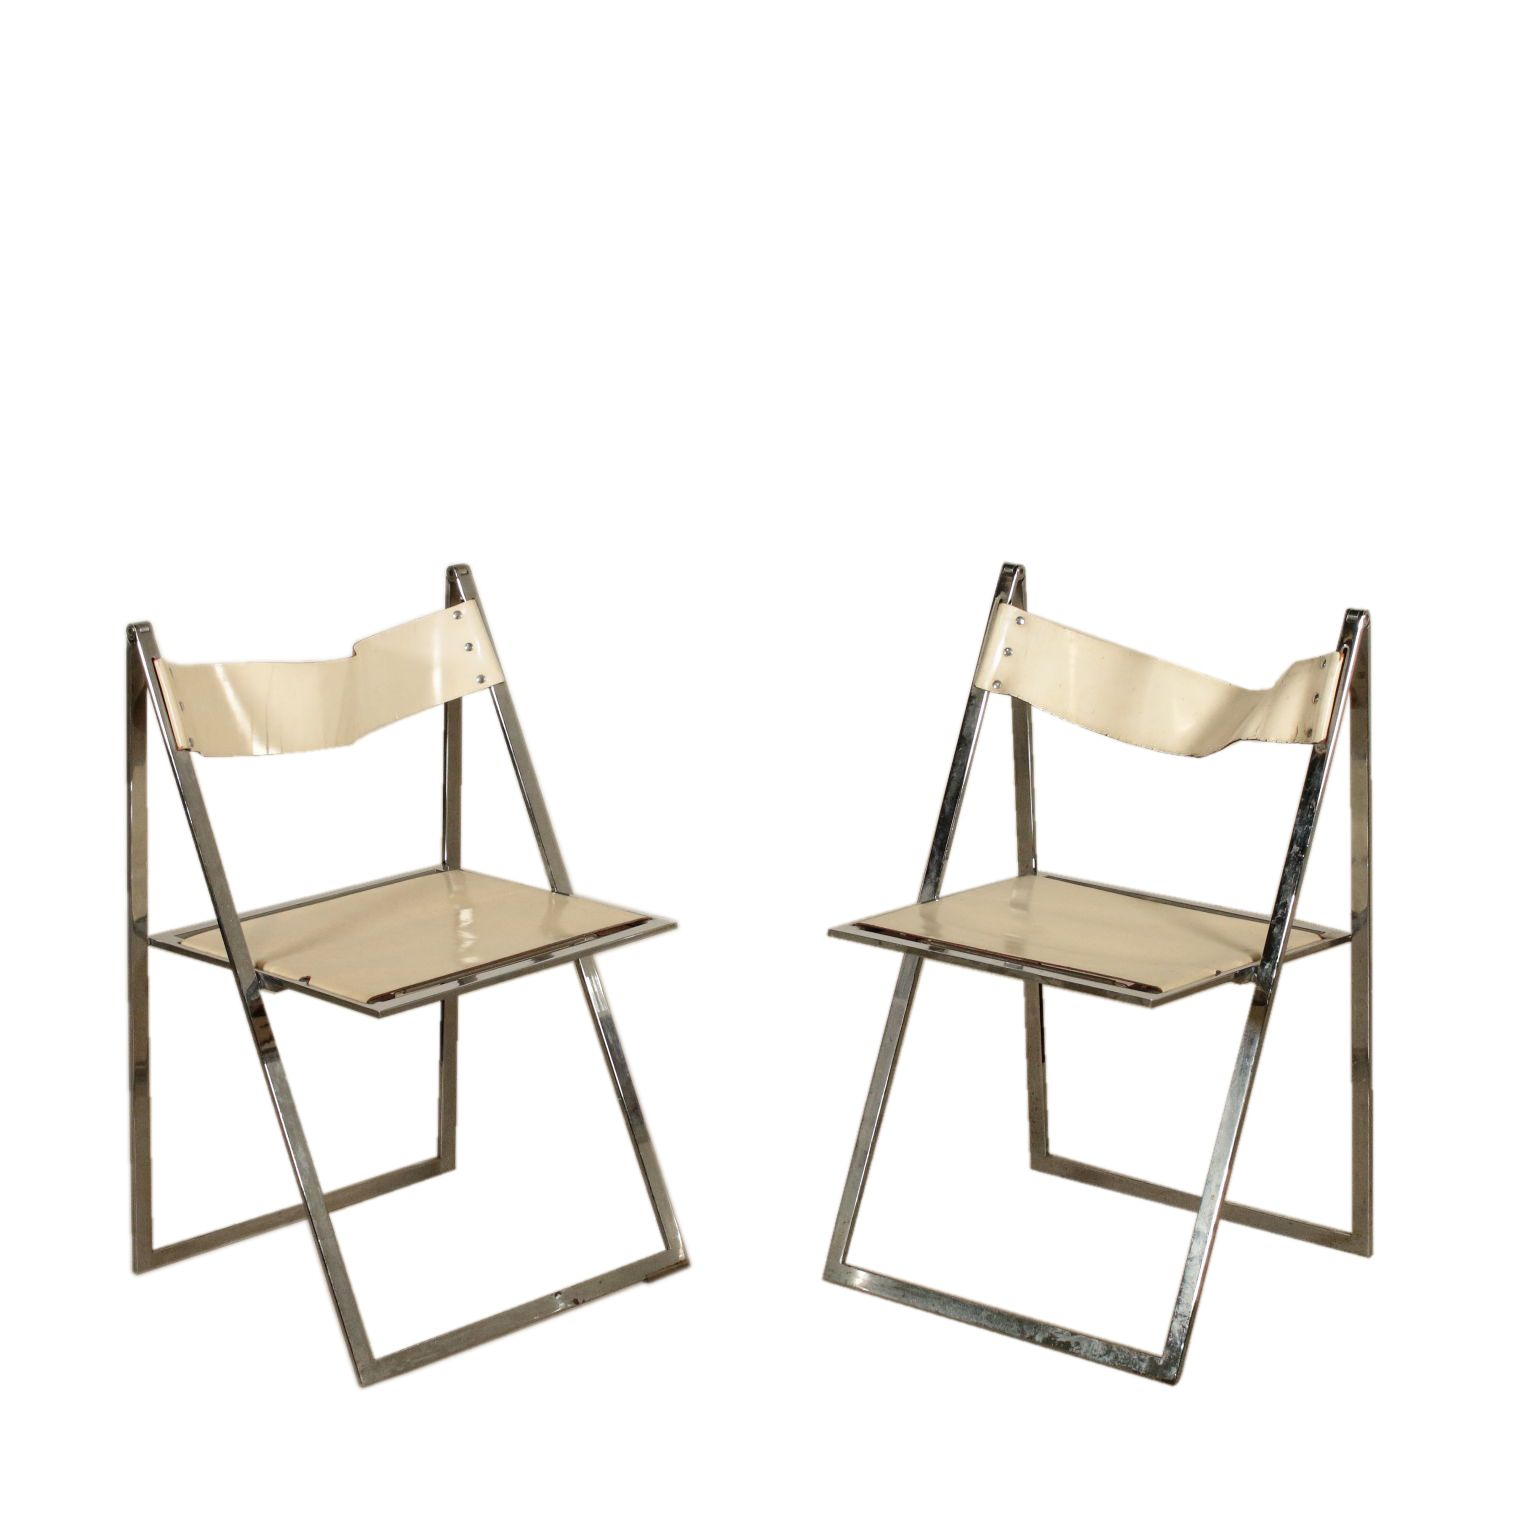 Pair Of Folding Chairs For Elios Colle D Elsa Vintage Italy 1970s